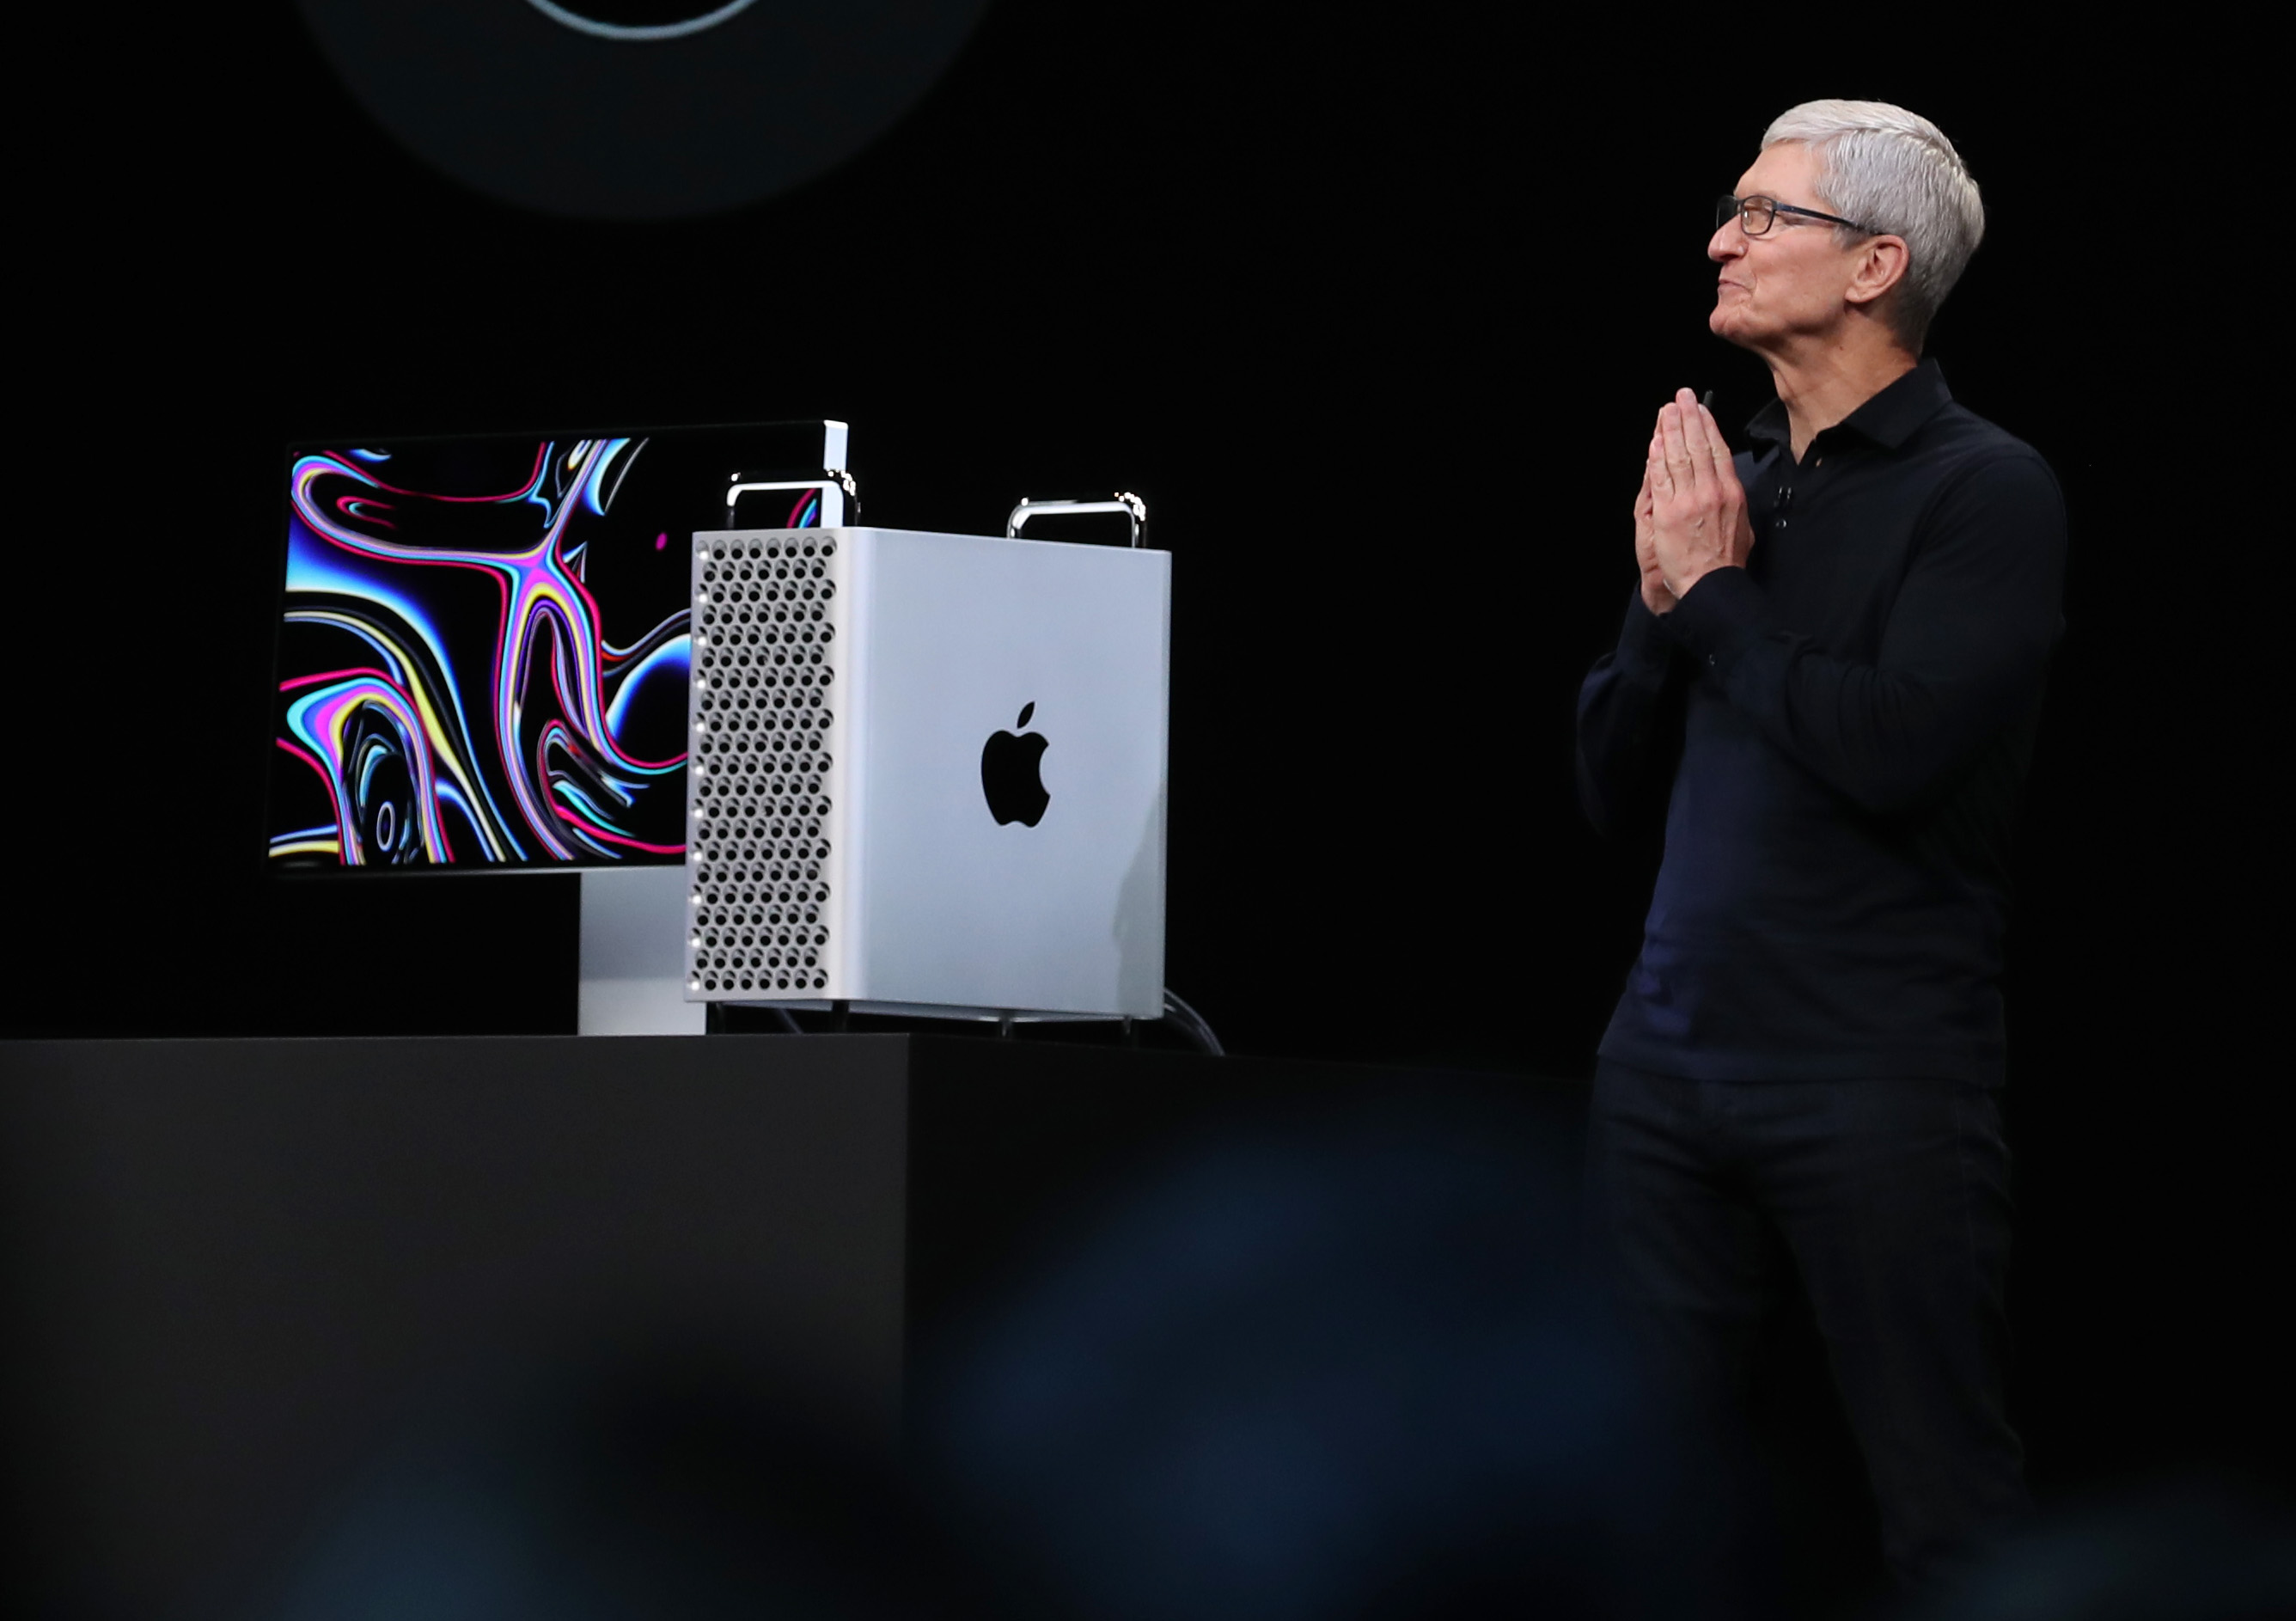 Tim Cook stands with hands pressed together next to the new Mac Pro, against a black background.